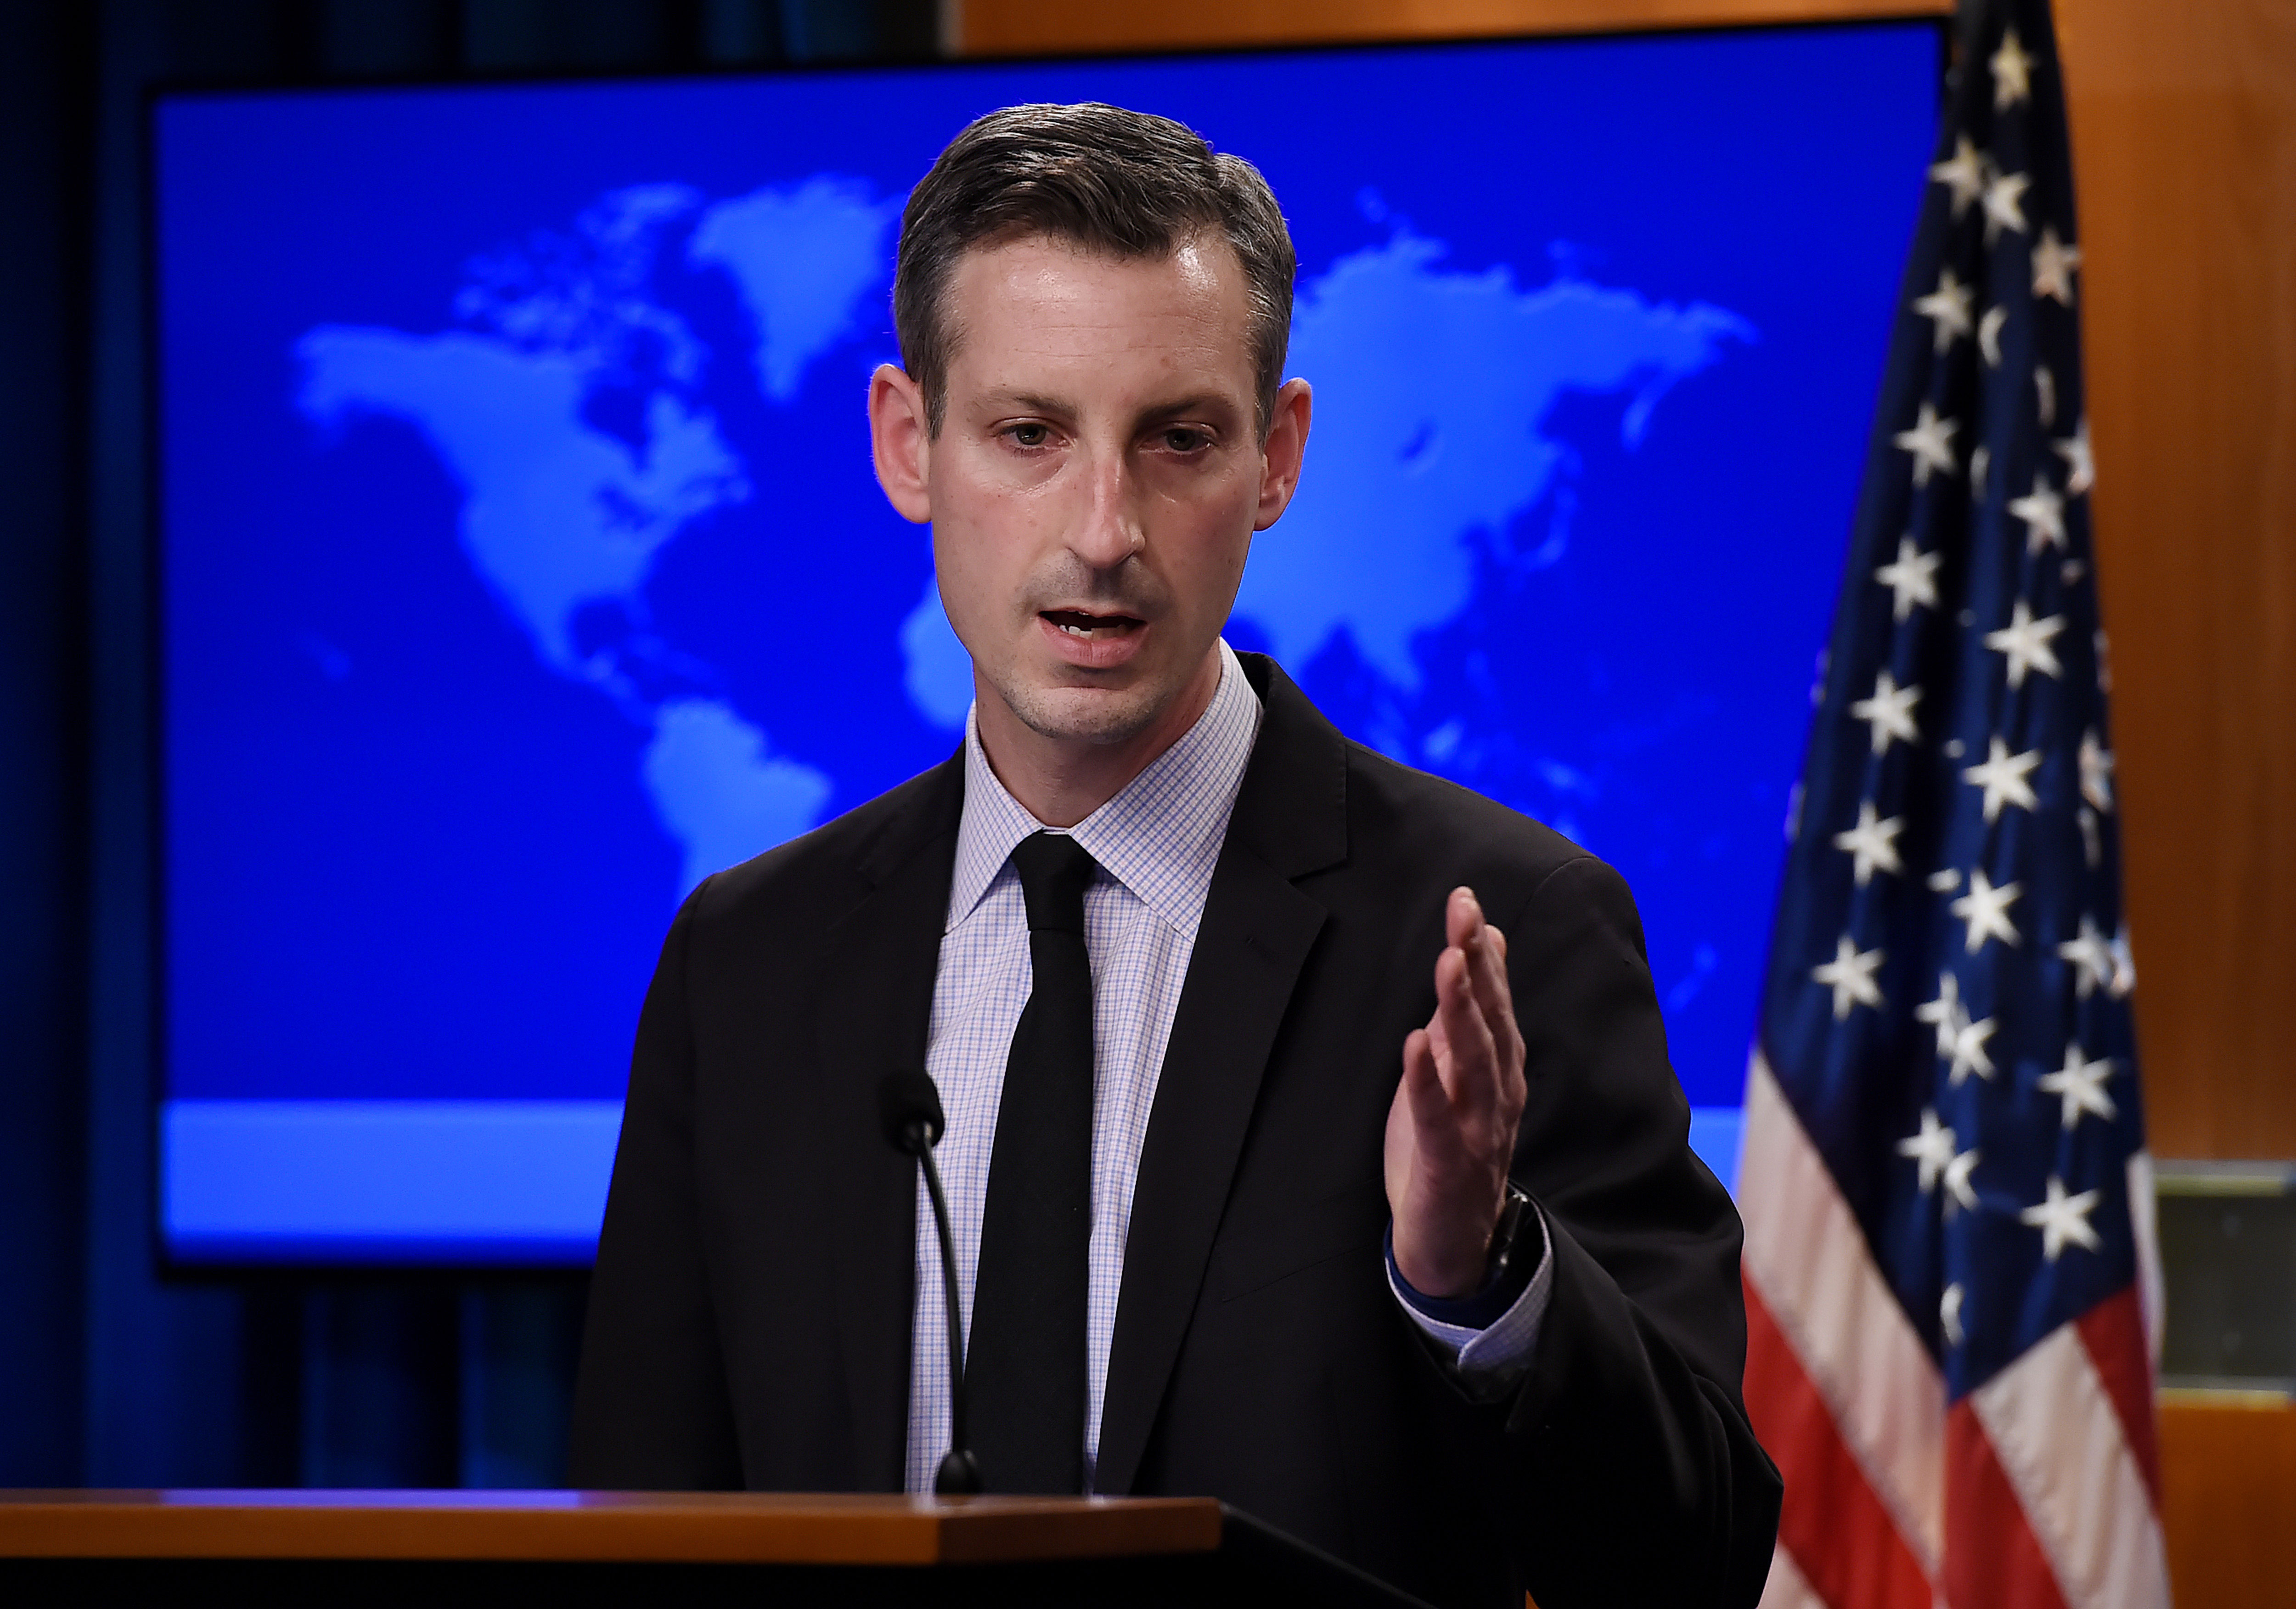 US State Department spokesperson Ned Price answers a question at a press briefing in Washington, DC, on February 9.